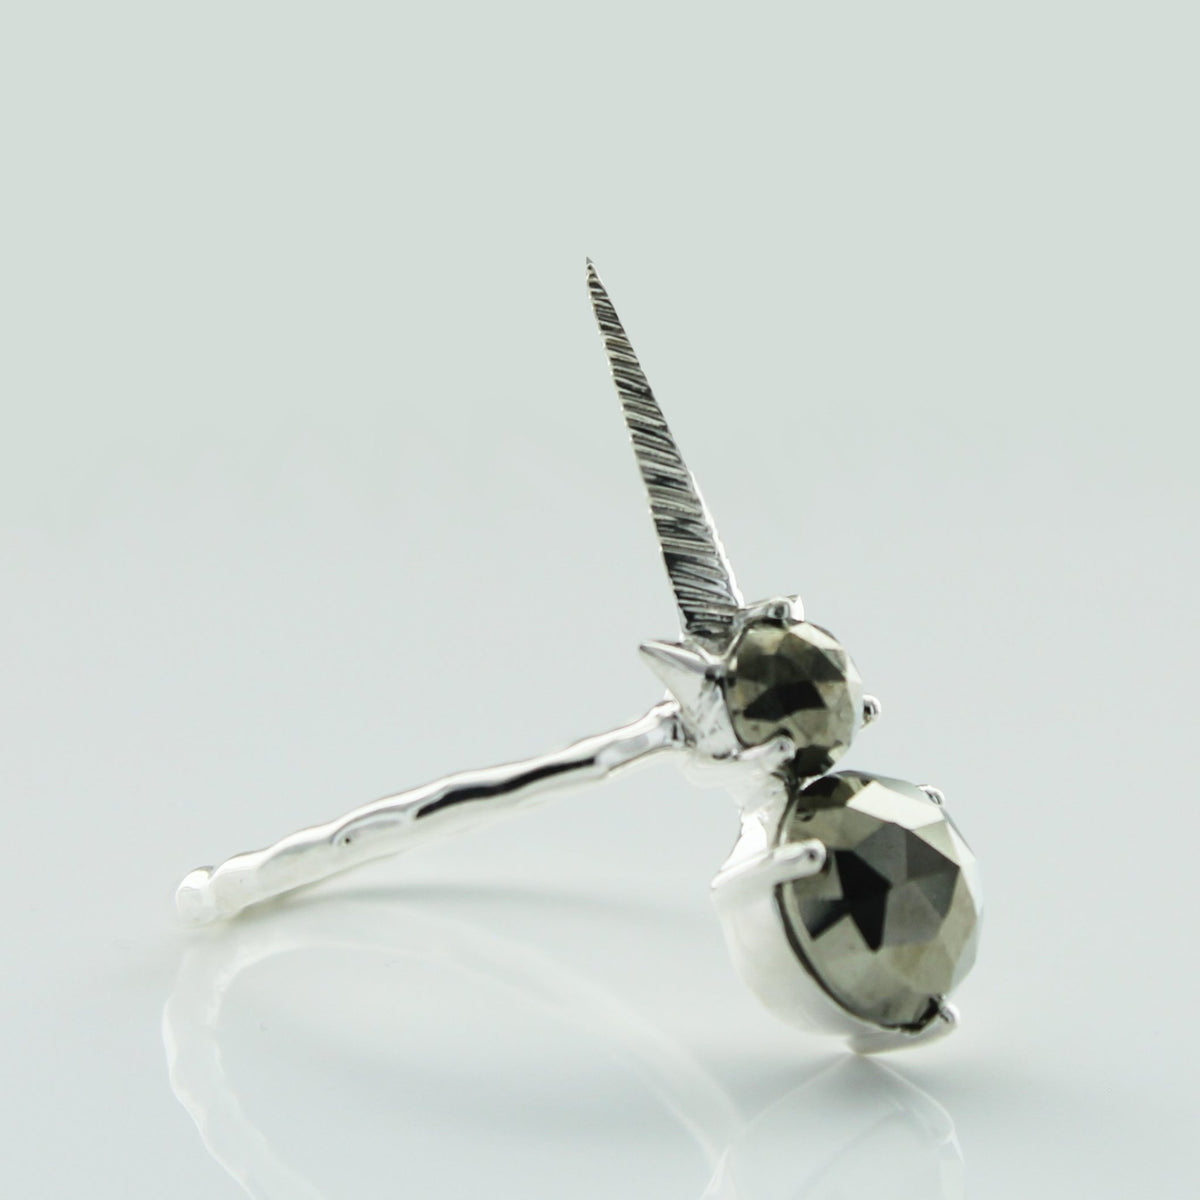 WONDER FALLING STAR RING - METALLIC PYRITE & SILVER - SO PRETTY CARA COTTER